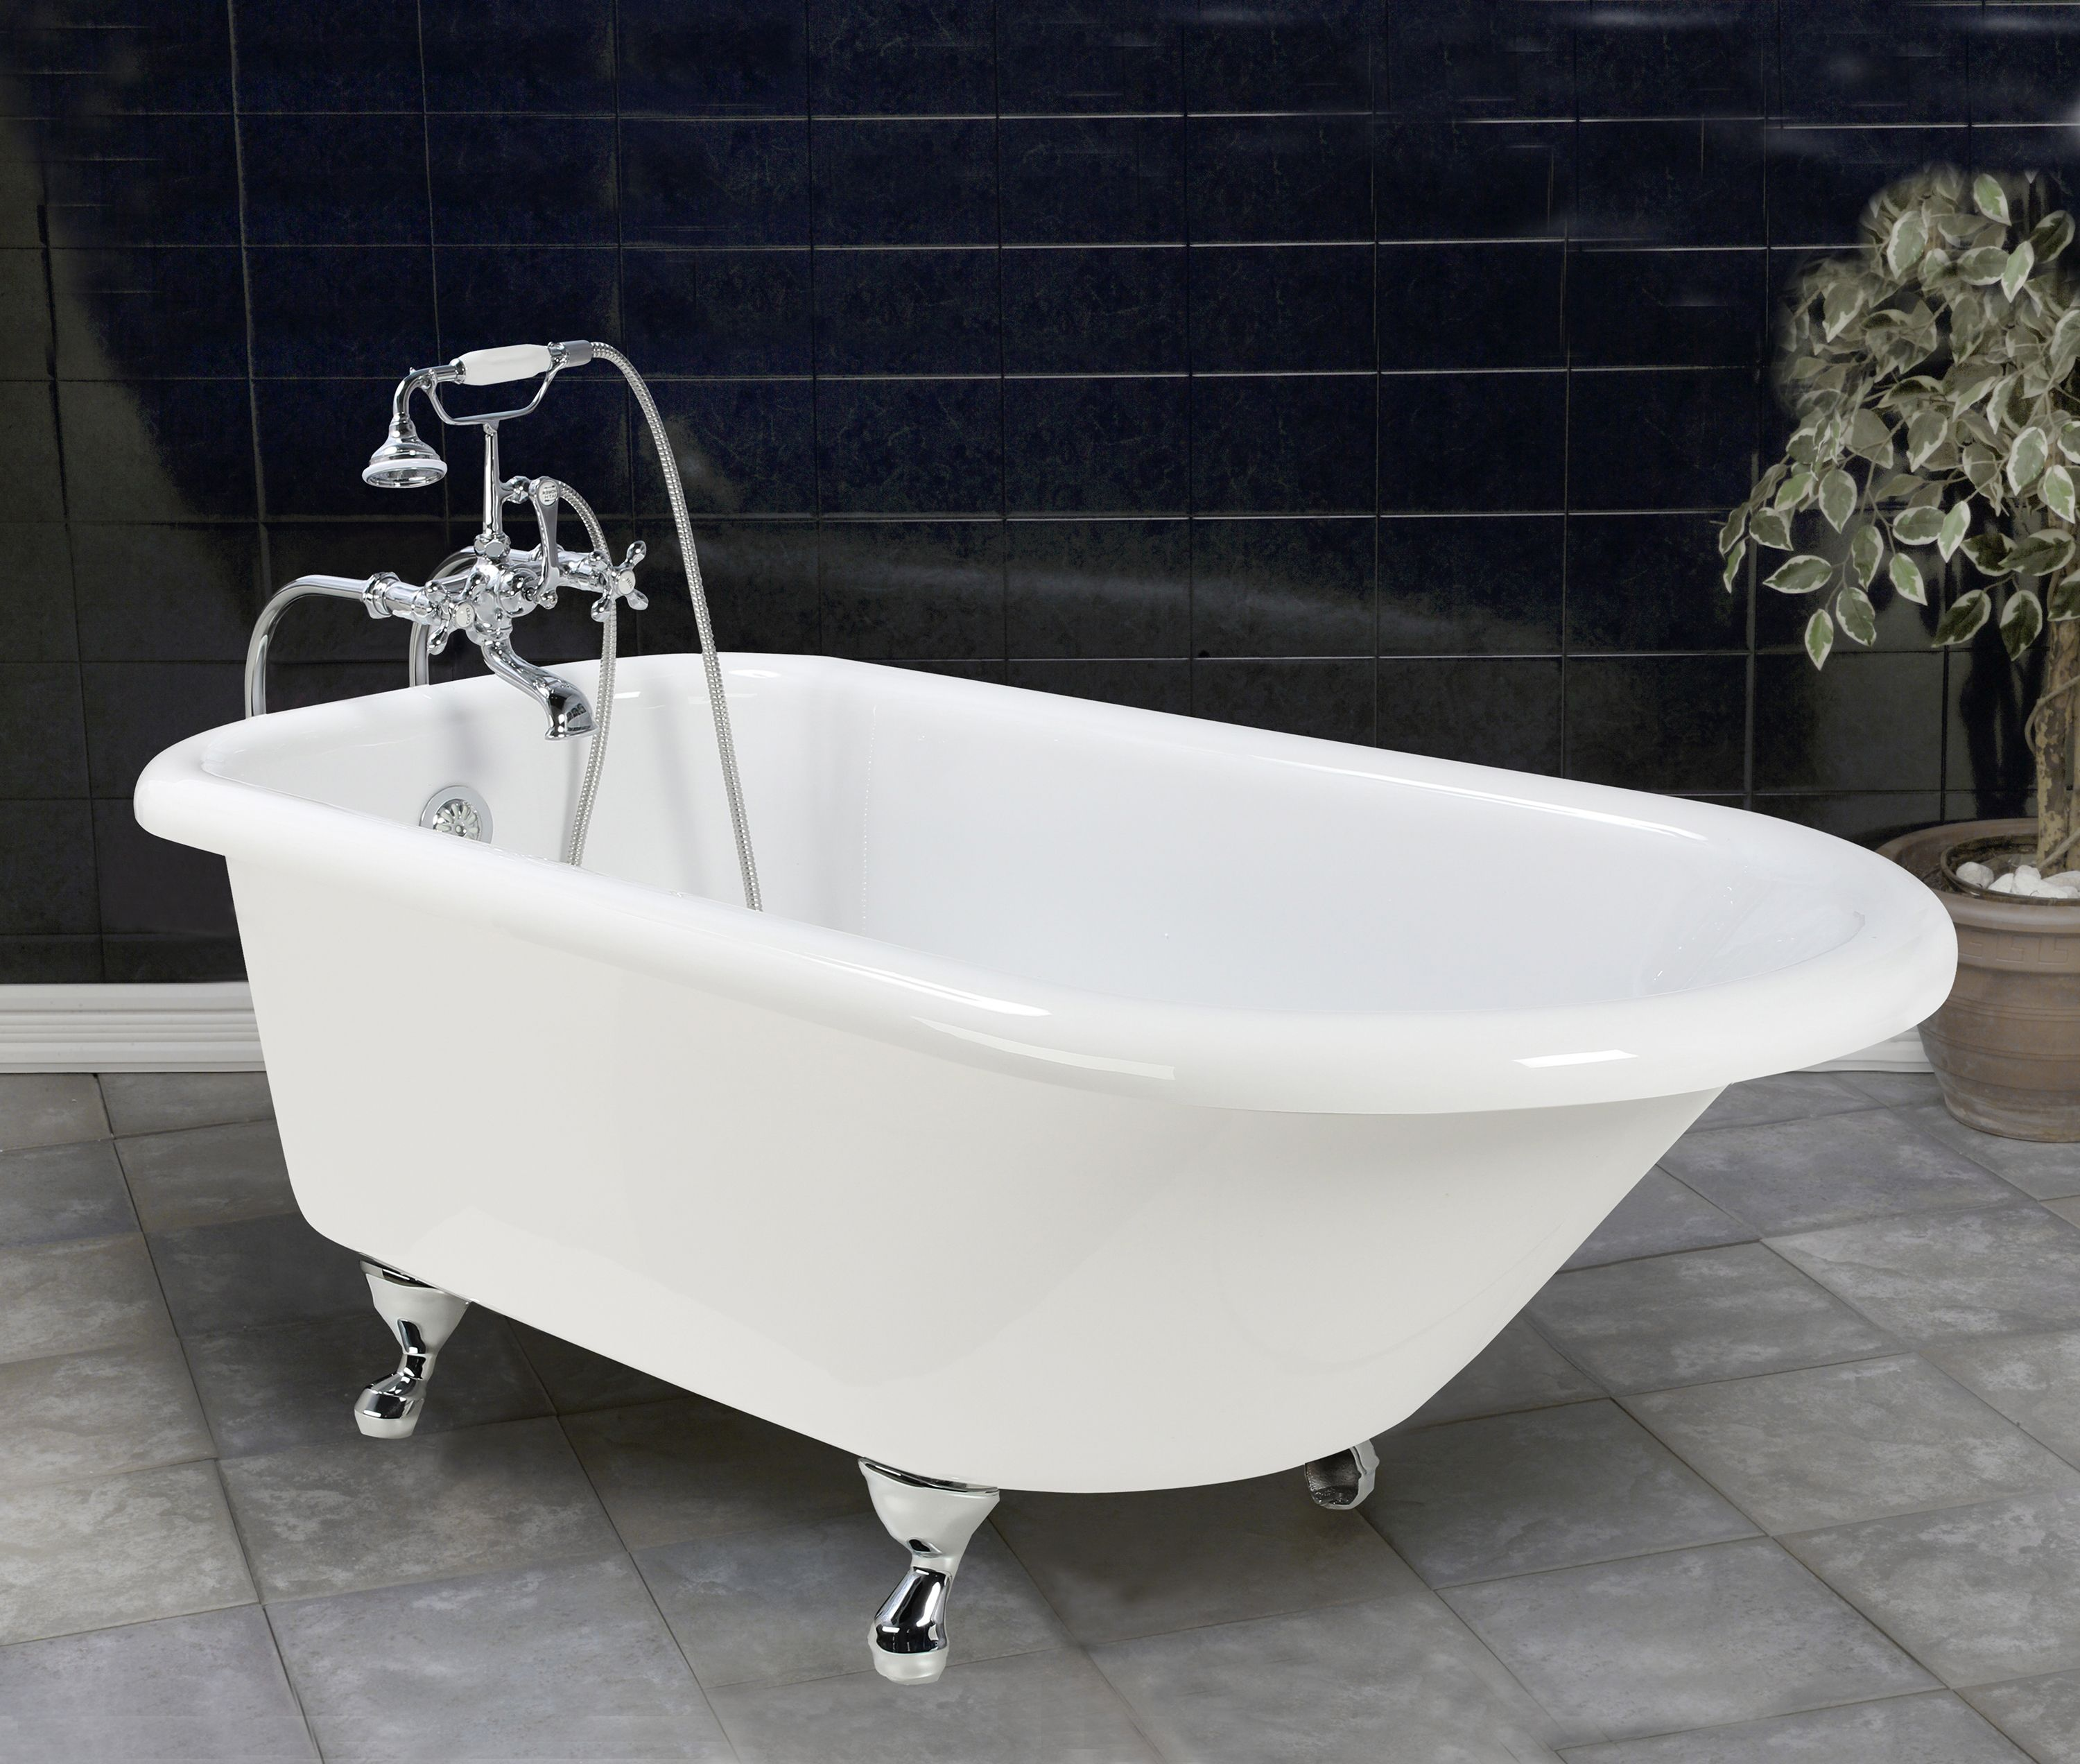 Old Bathtubs | Home / Products / Chedworth 5\' Old Fashioned Bathtub ...